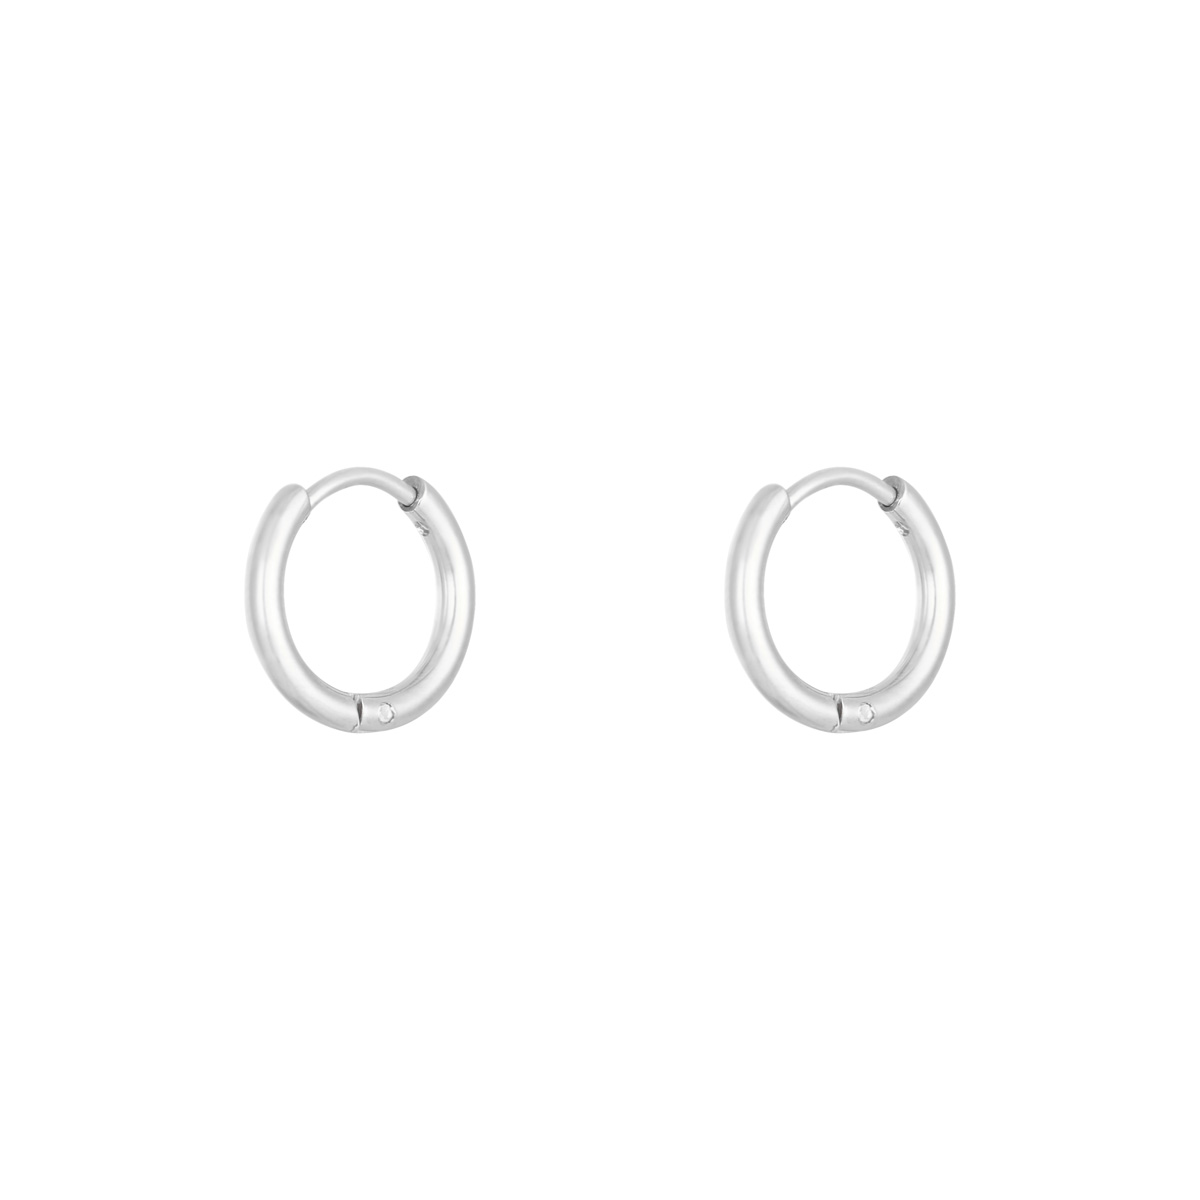 Boucles d'oreilles Little Hoops 1.4cm